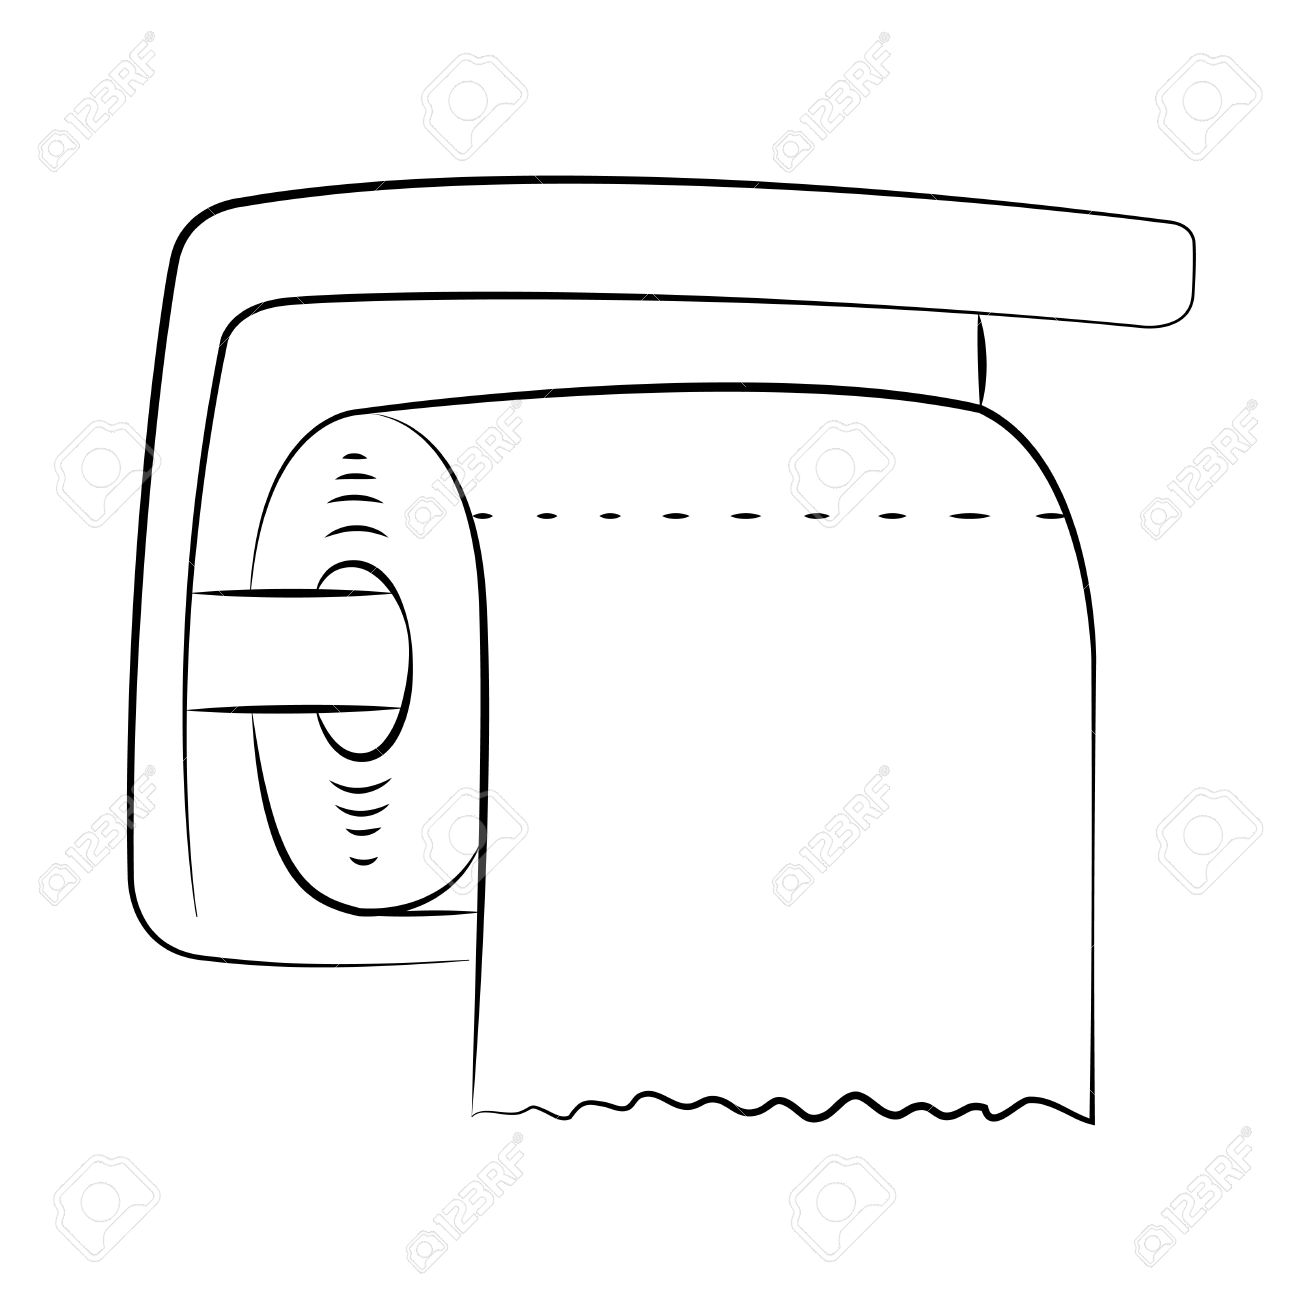 1299x1300 Bathroom Tissue Clipart